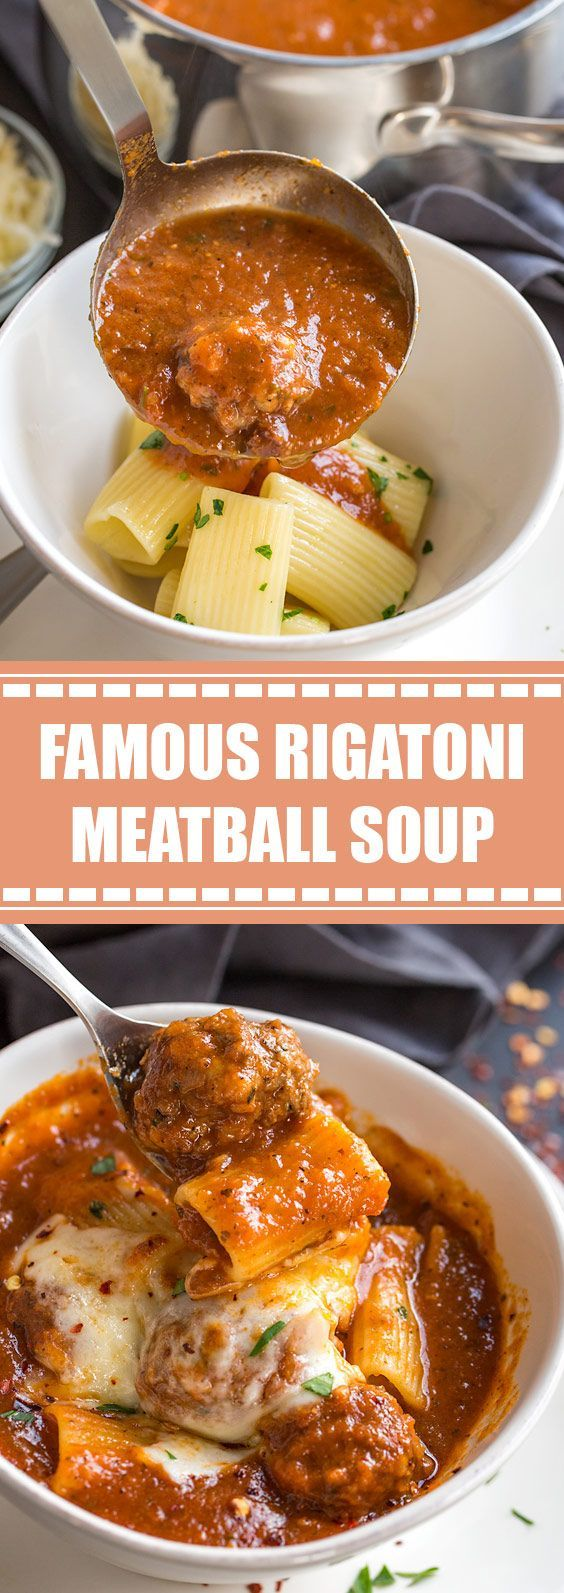 Mar 23, 2020 – ★★★★★ 58 reviews: Famous Rigatoni Meatball Soup | Rich and hearty, this comforting rigatoni meatball soup…